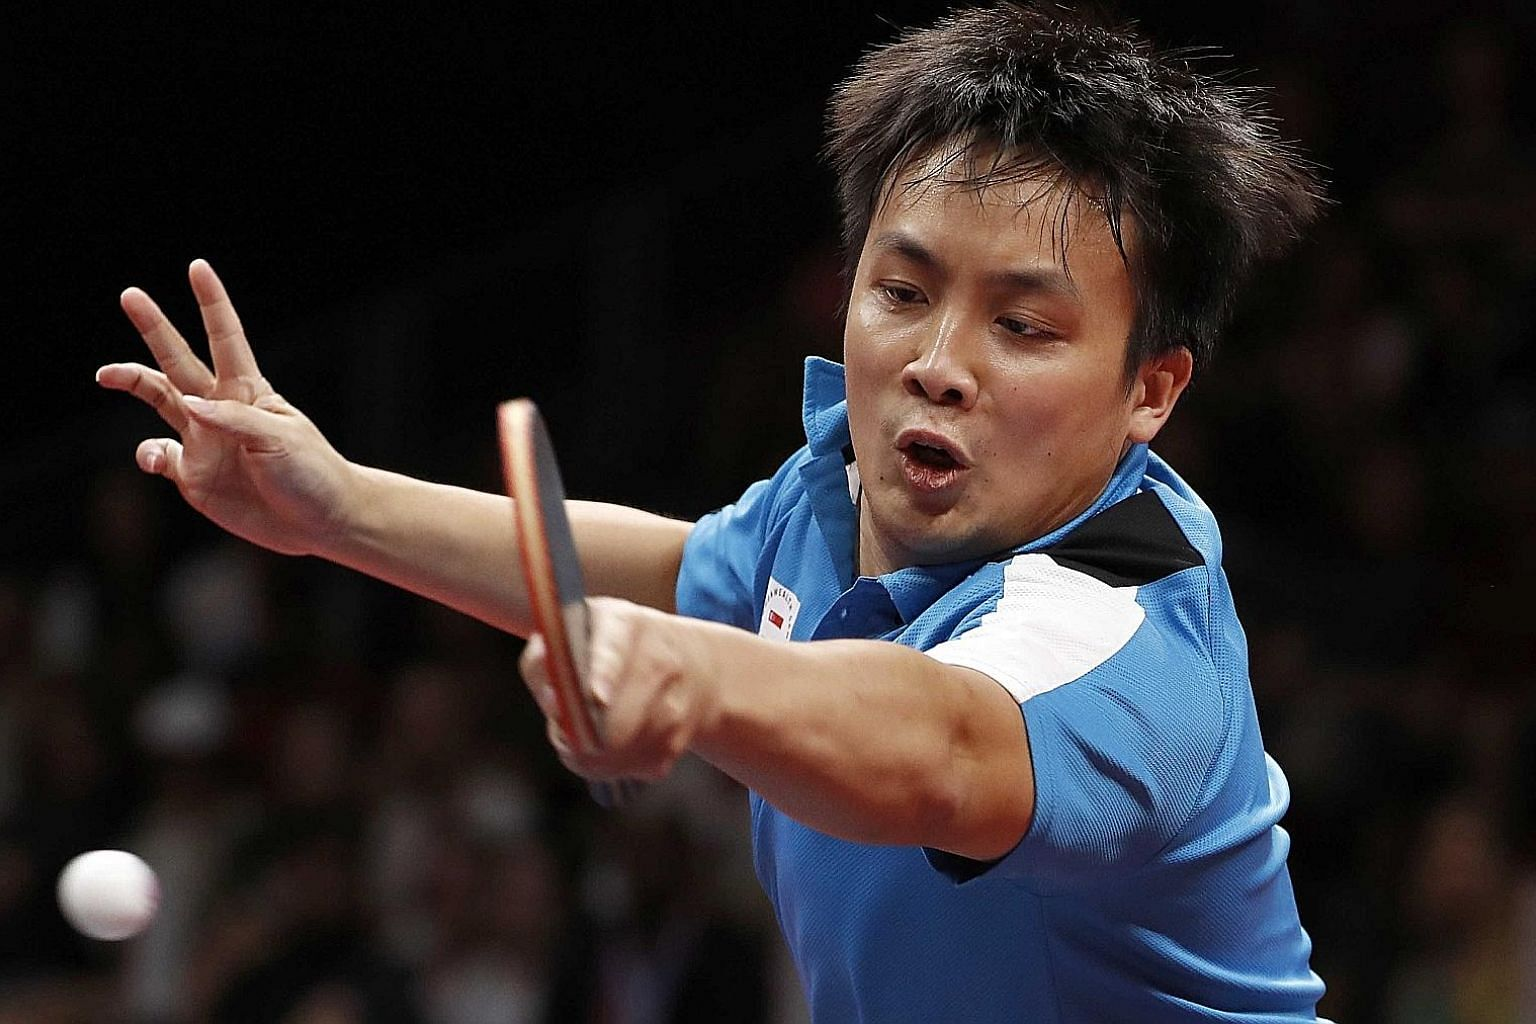 Pang Xue Jie in action at the Gold Coast Commonwealth Games last month, the first time since 2002 that the men's team had failed to win a medal.